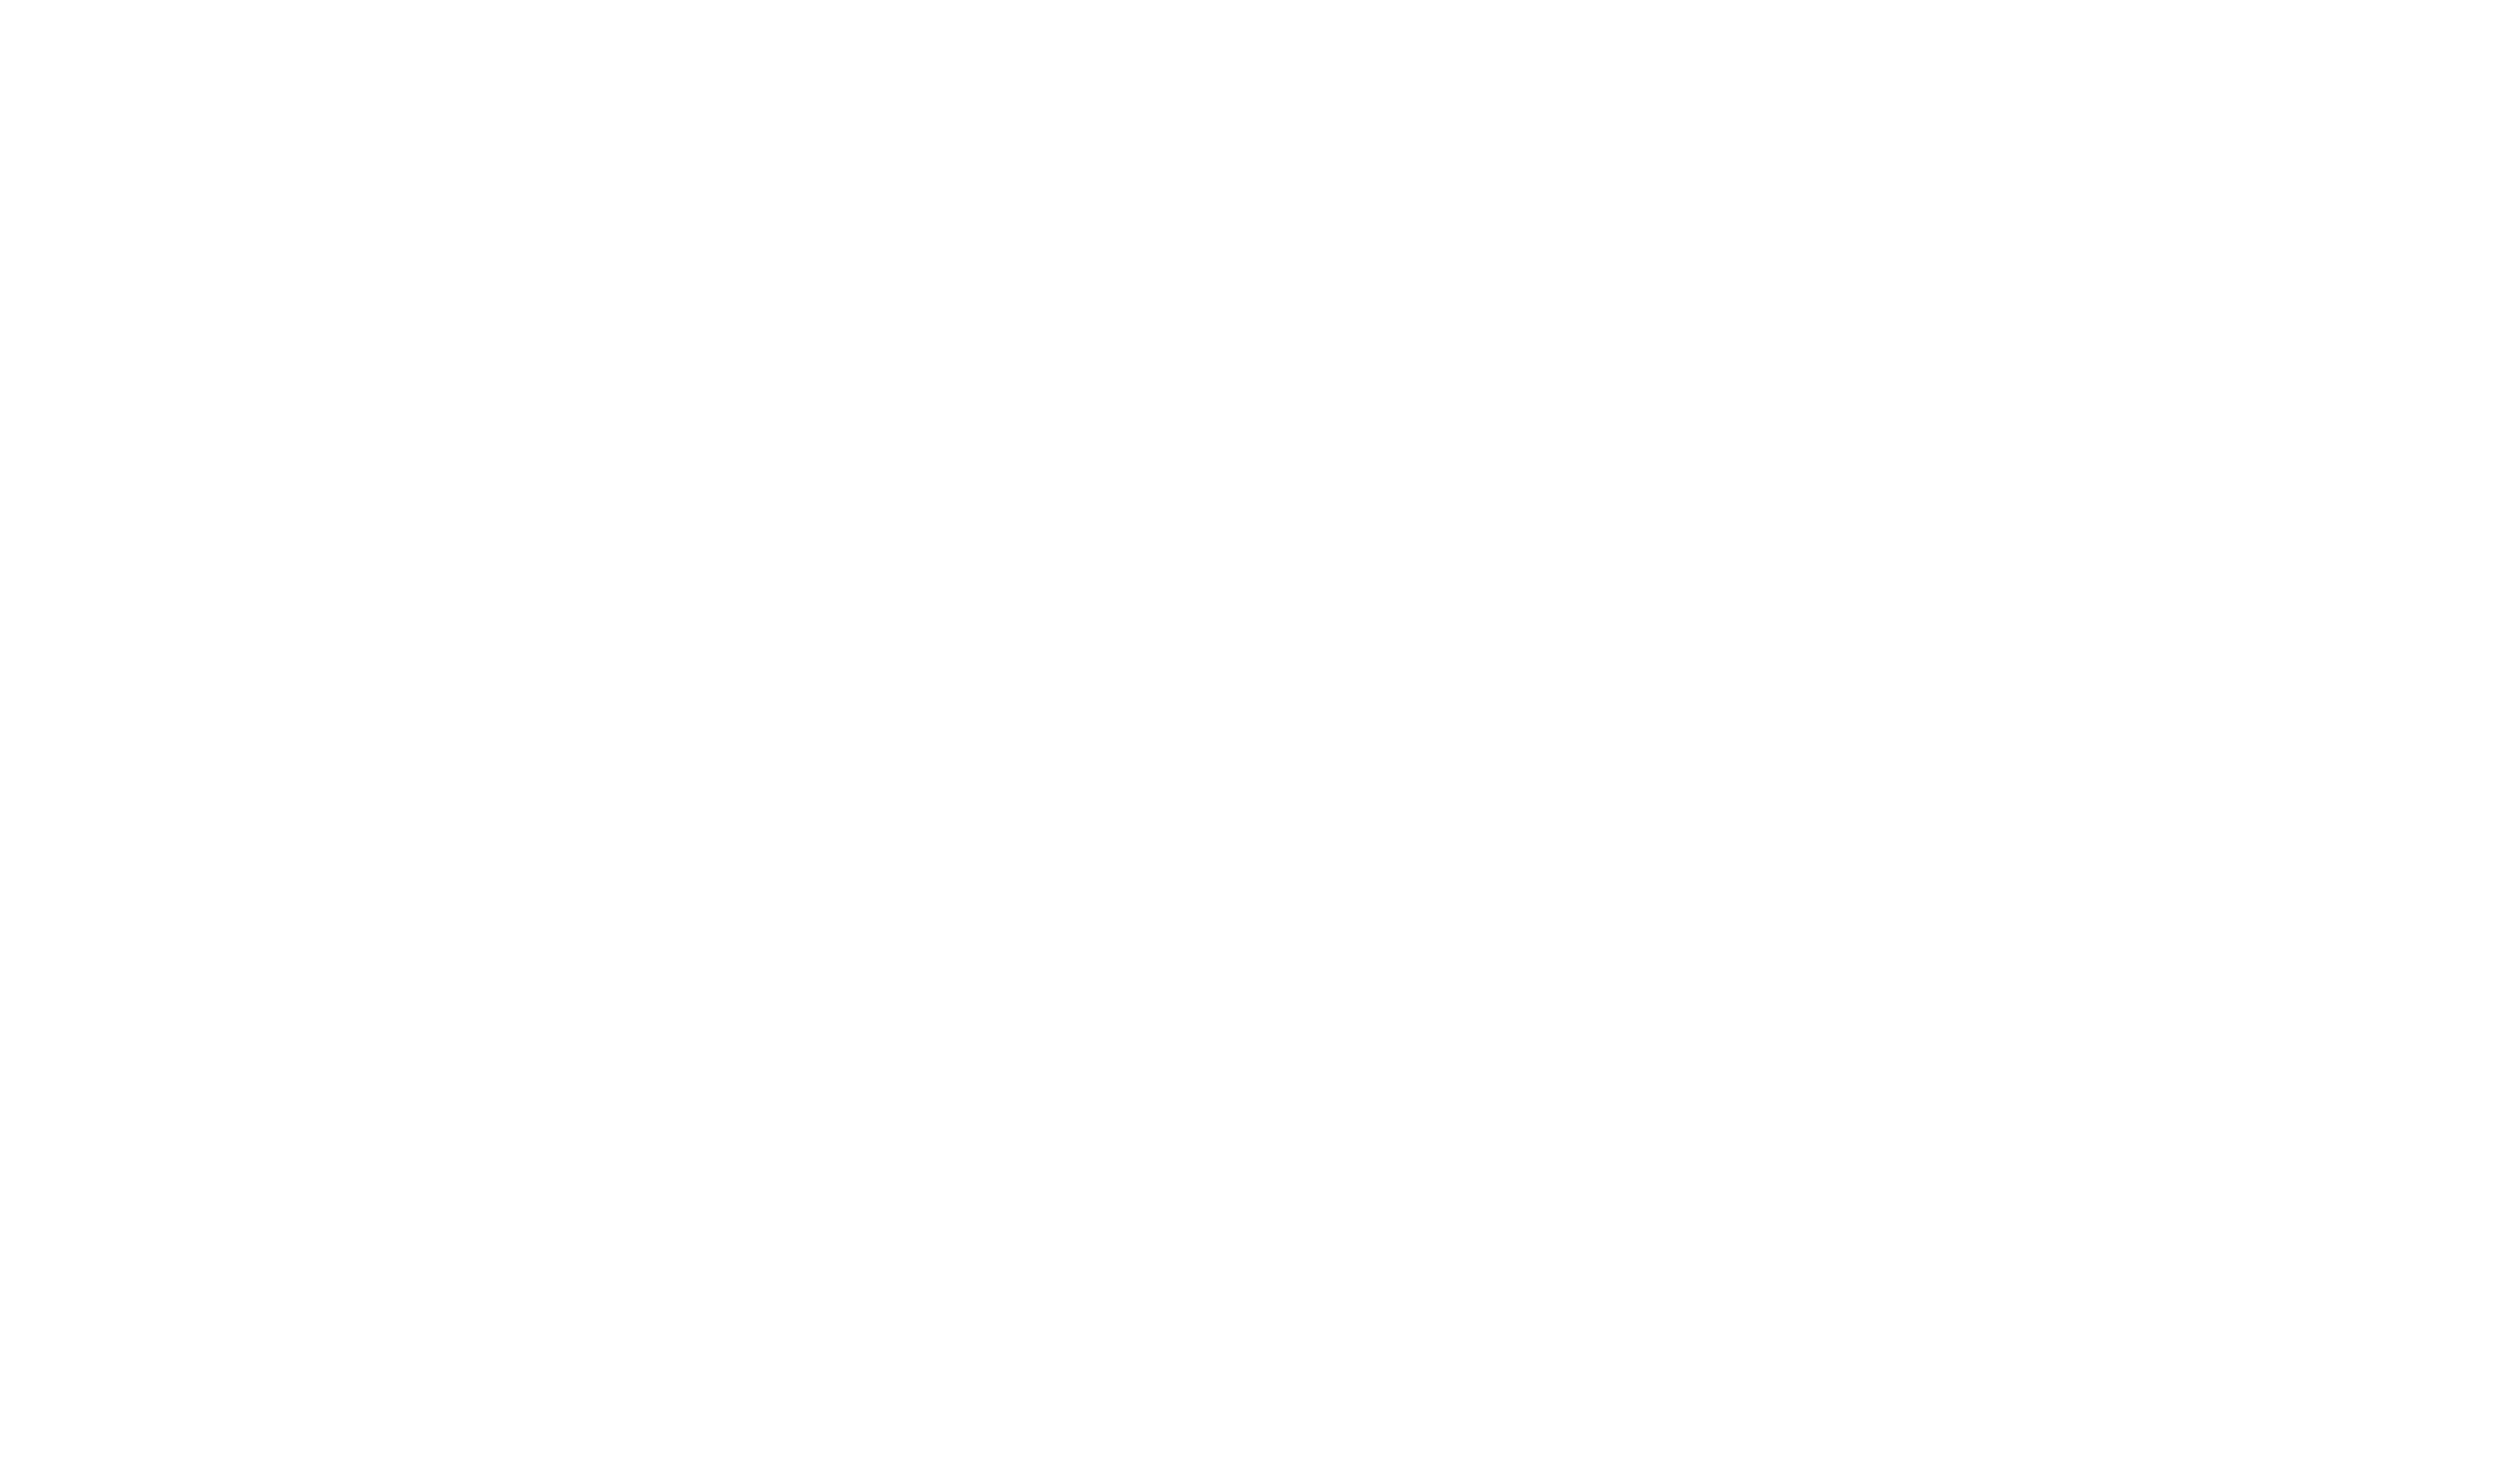 Just The Beginning Production